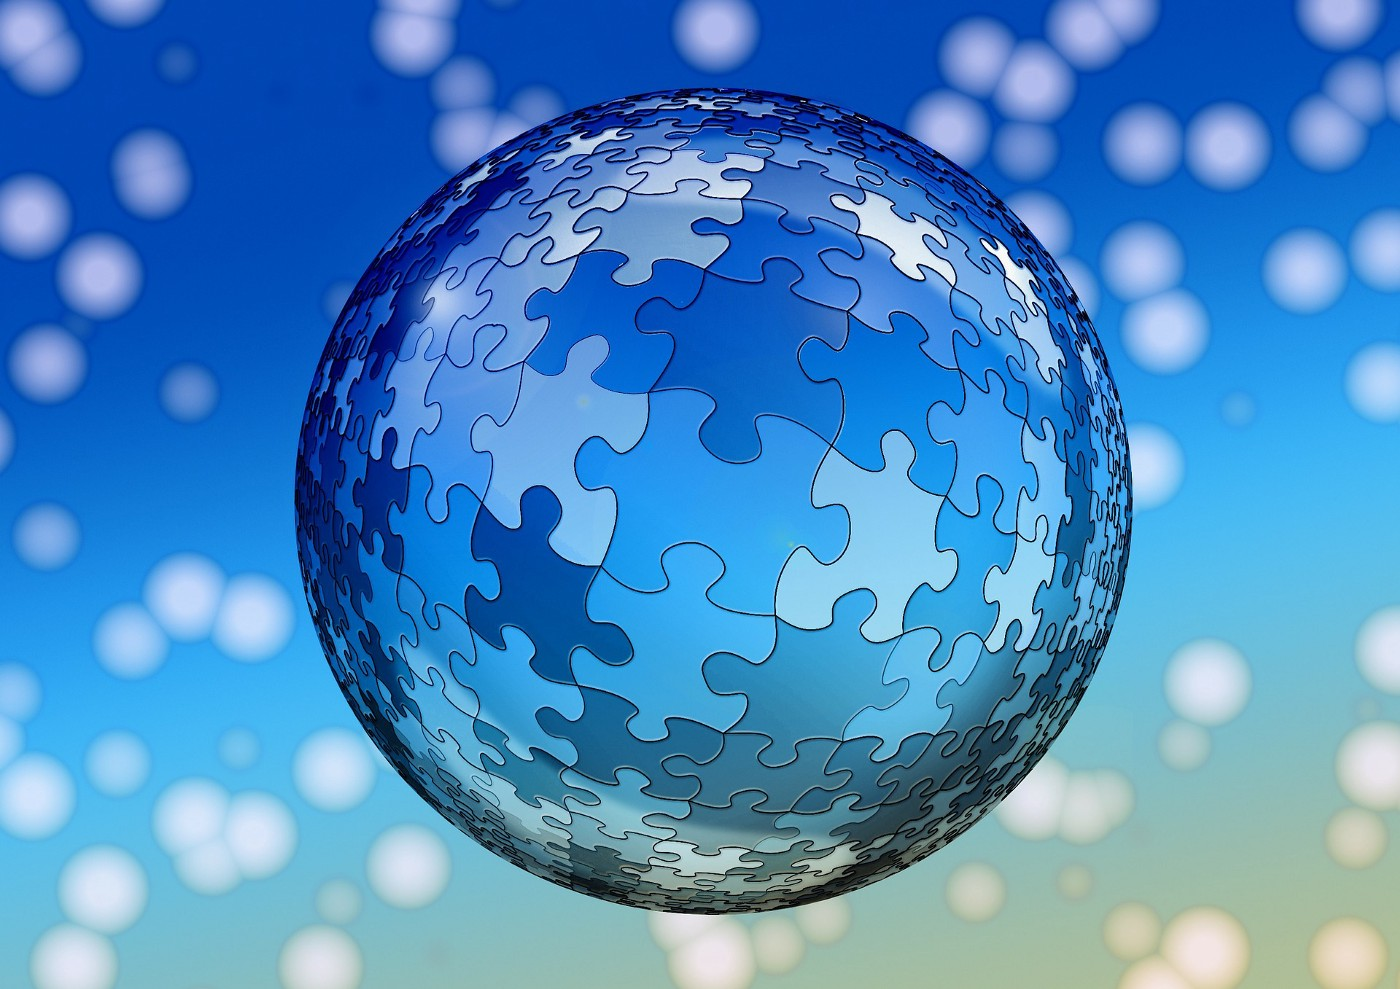 A ball puzzle representing the world as the mystery of God.